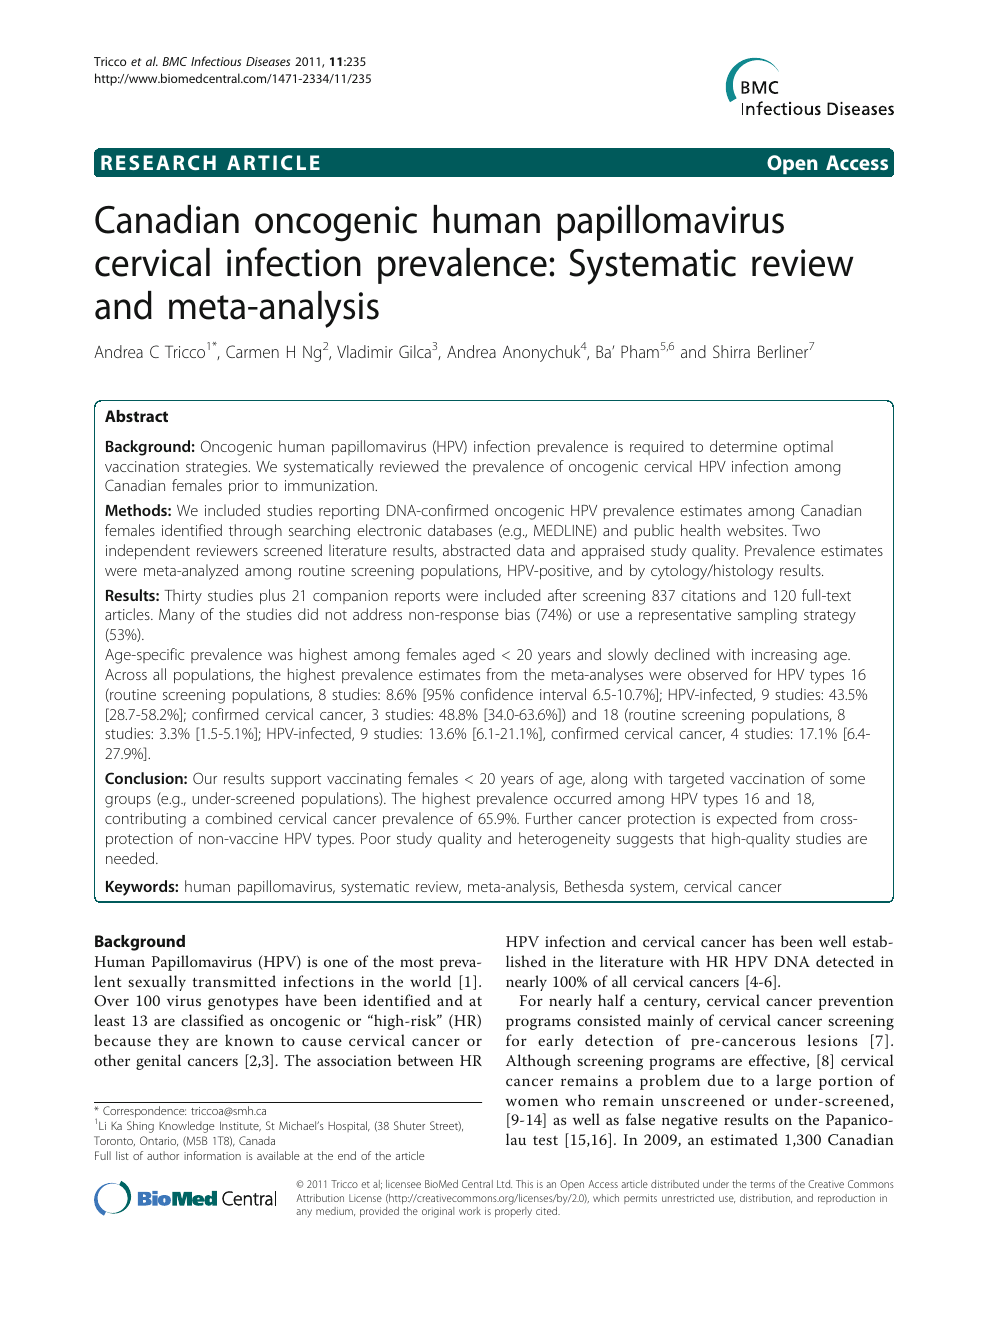 papillomaviruses a systematic review)